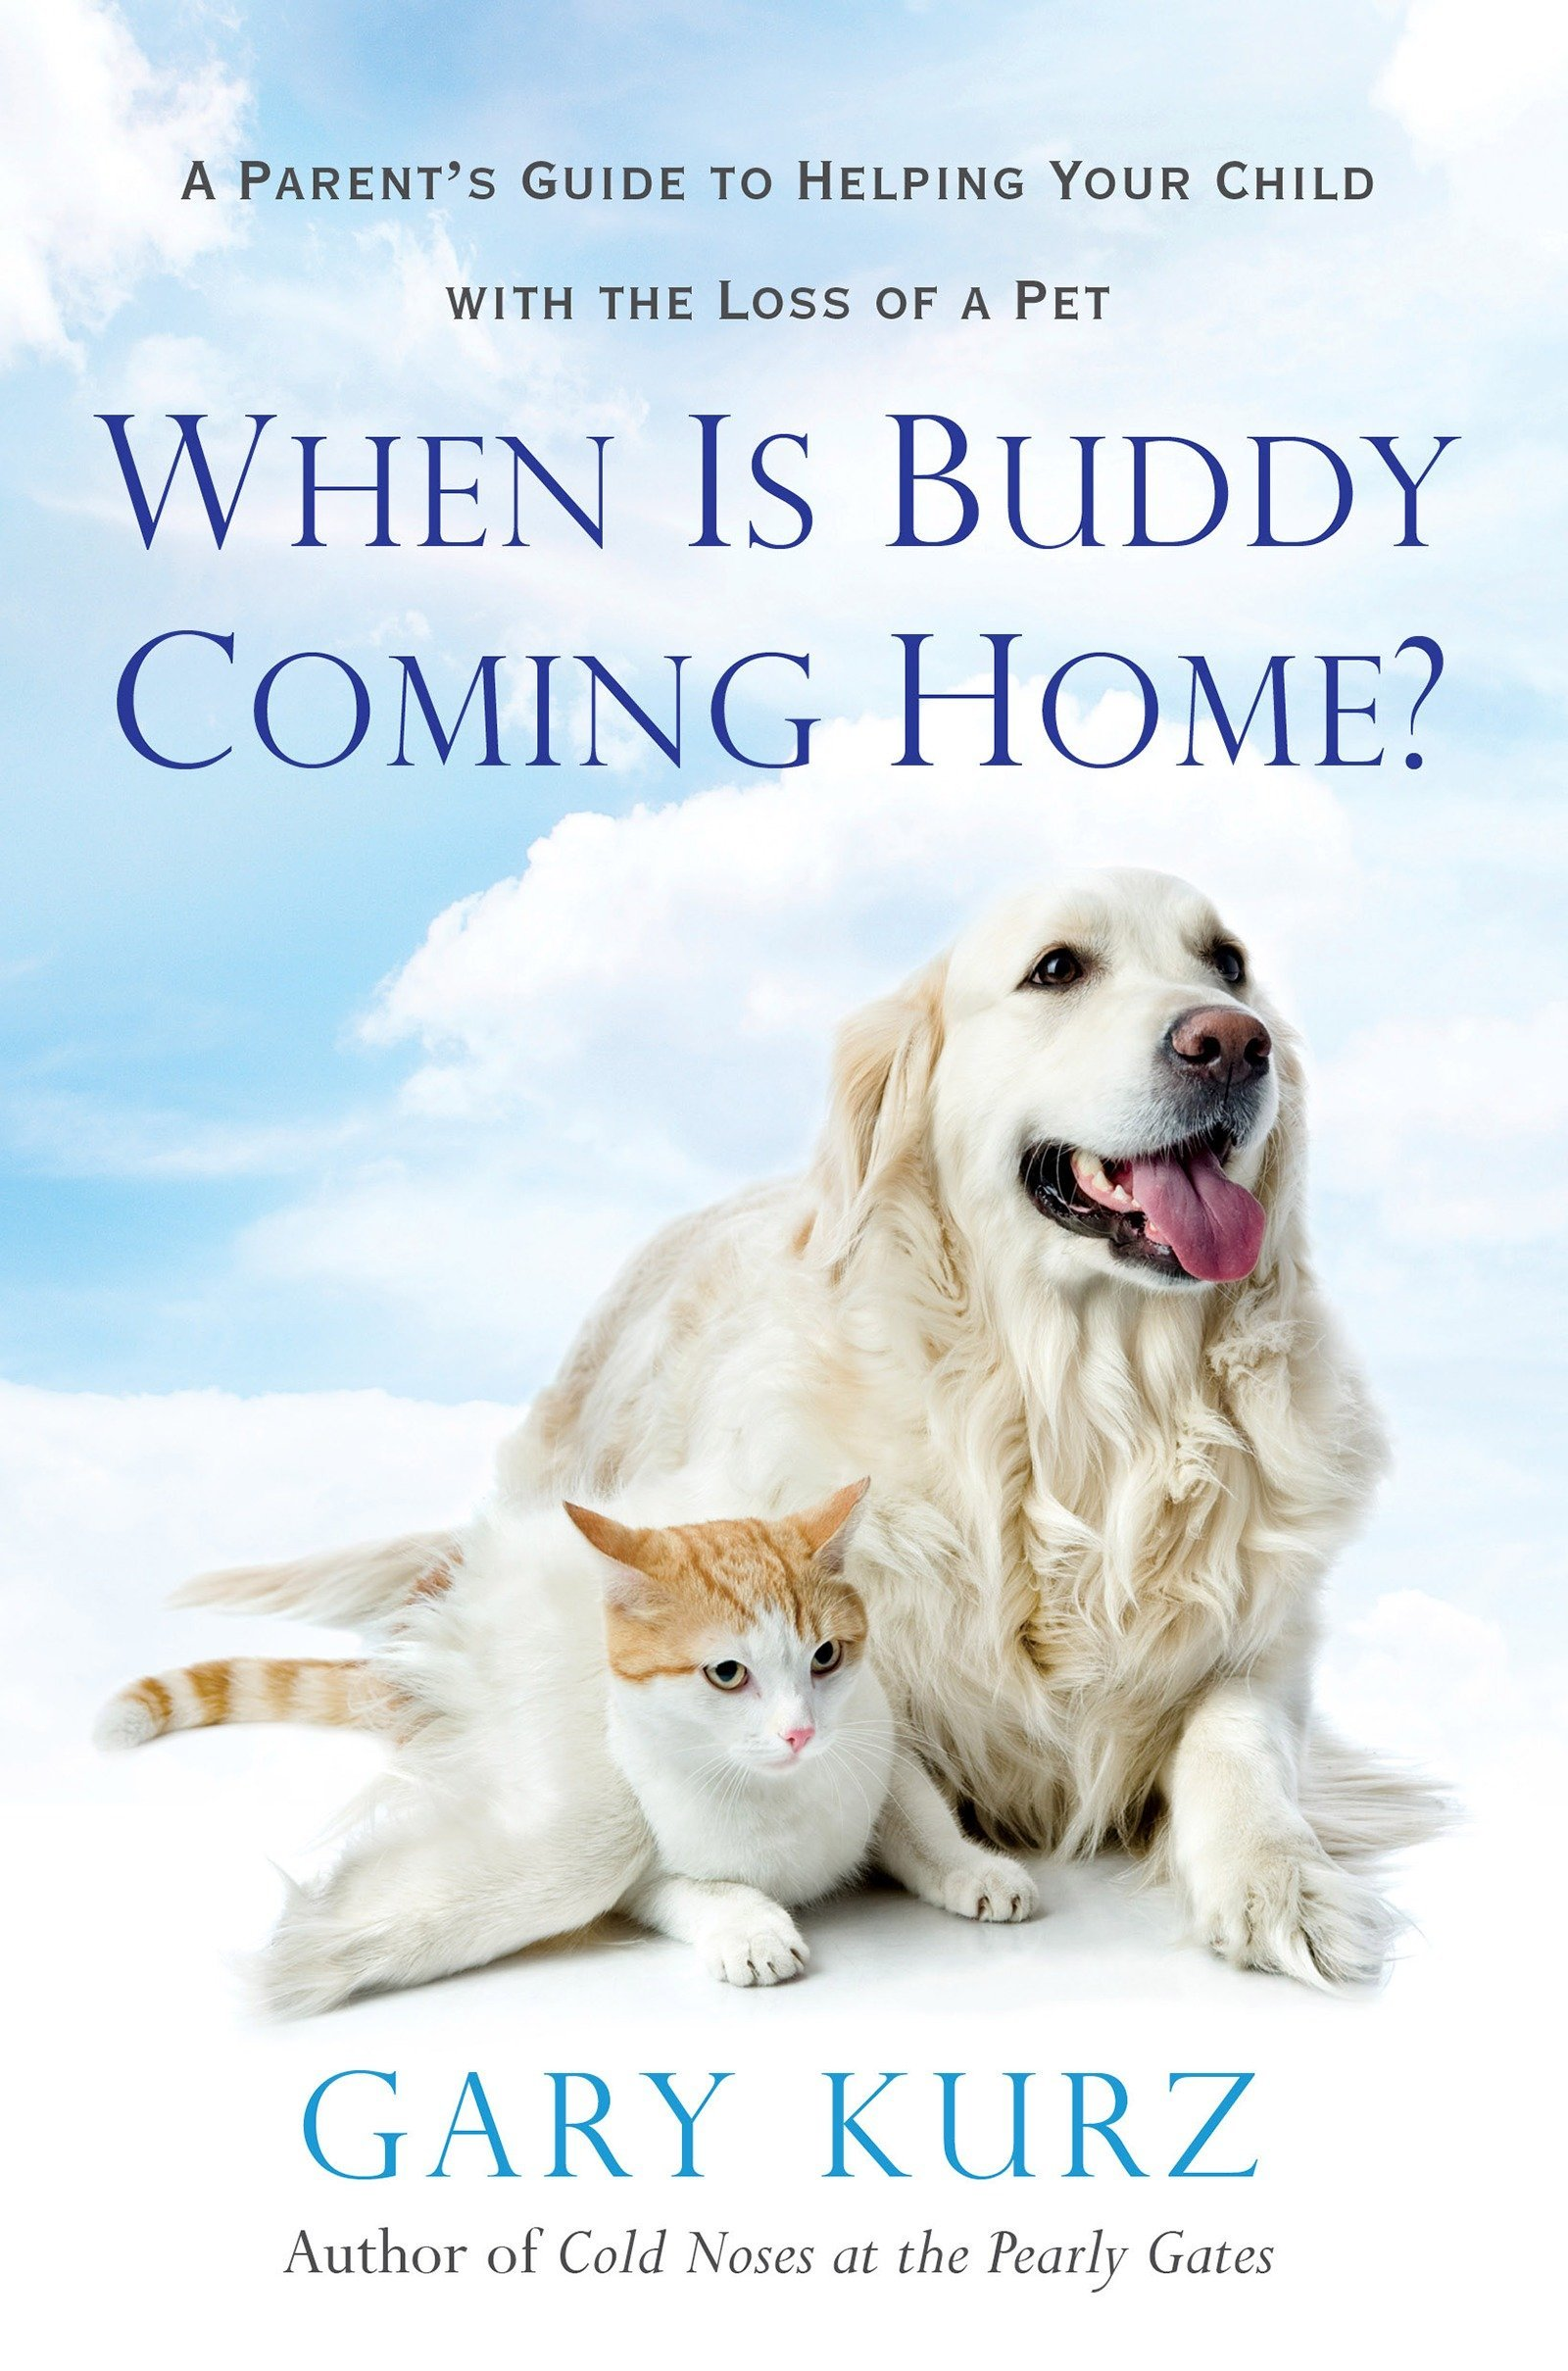 When Is Buddy Coming Home?: A Parent's Guide to Helping Your Child with the  Loss of a Pet: Gary Kurz: 9780806538174: Amazon.com: Books